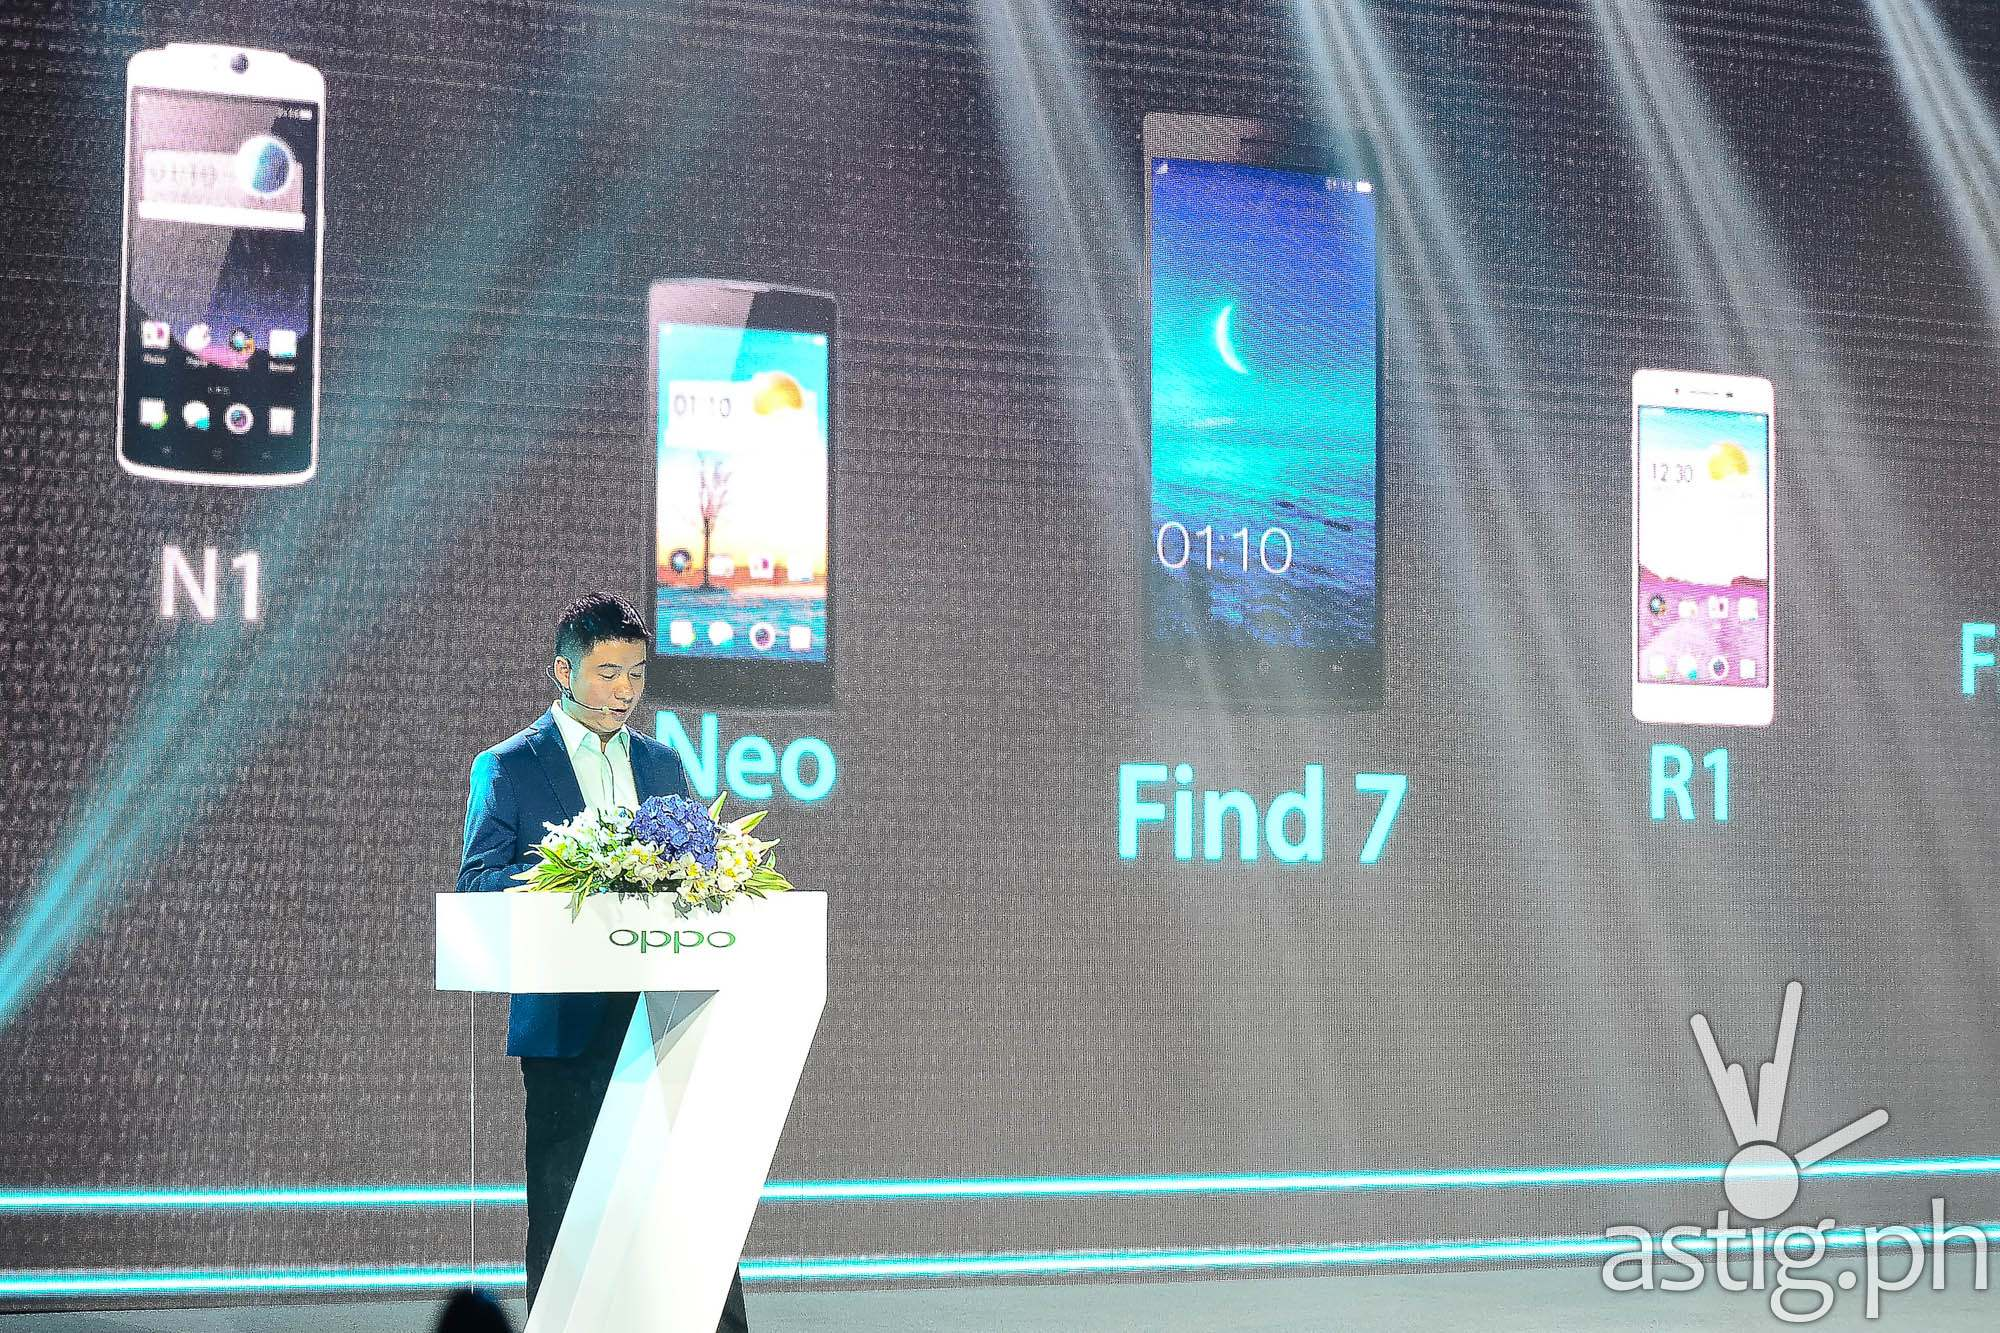 OPPO Philippines CEO James Ma a the Find 7 launch